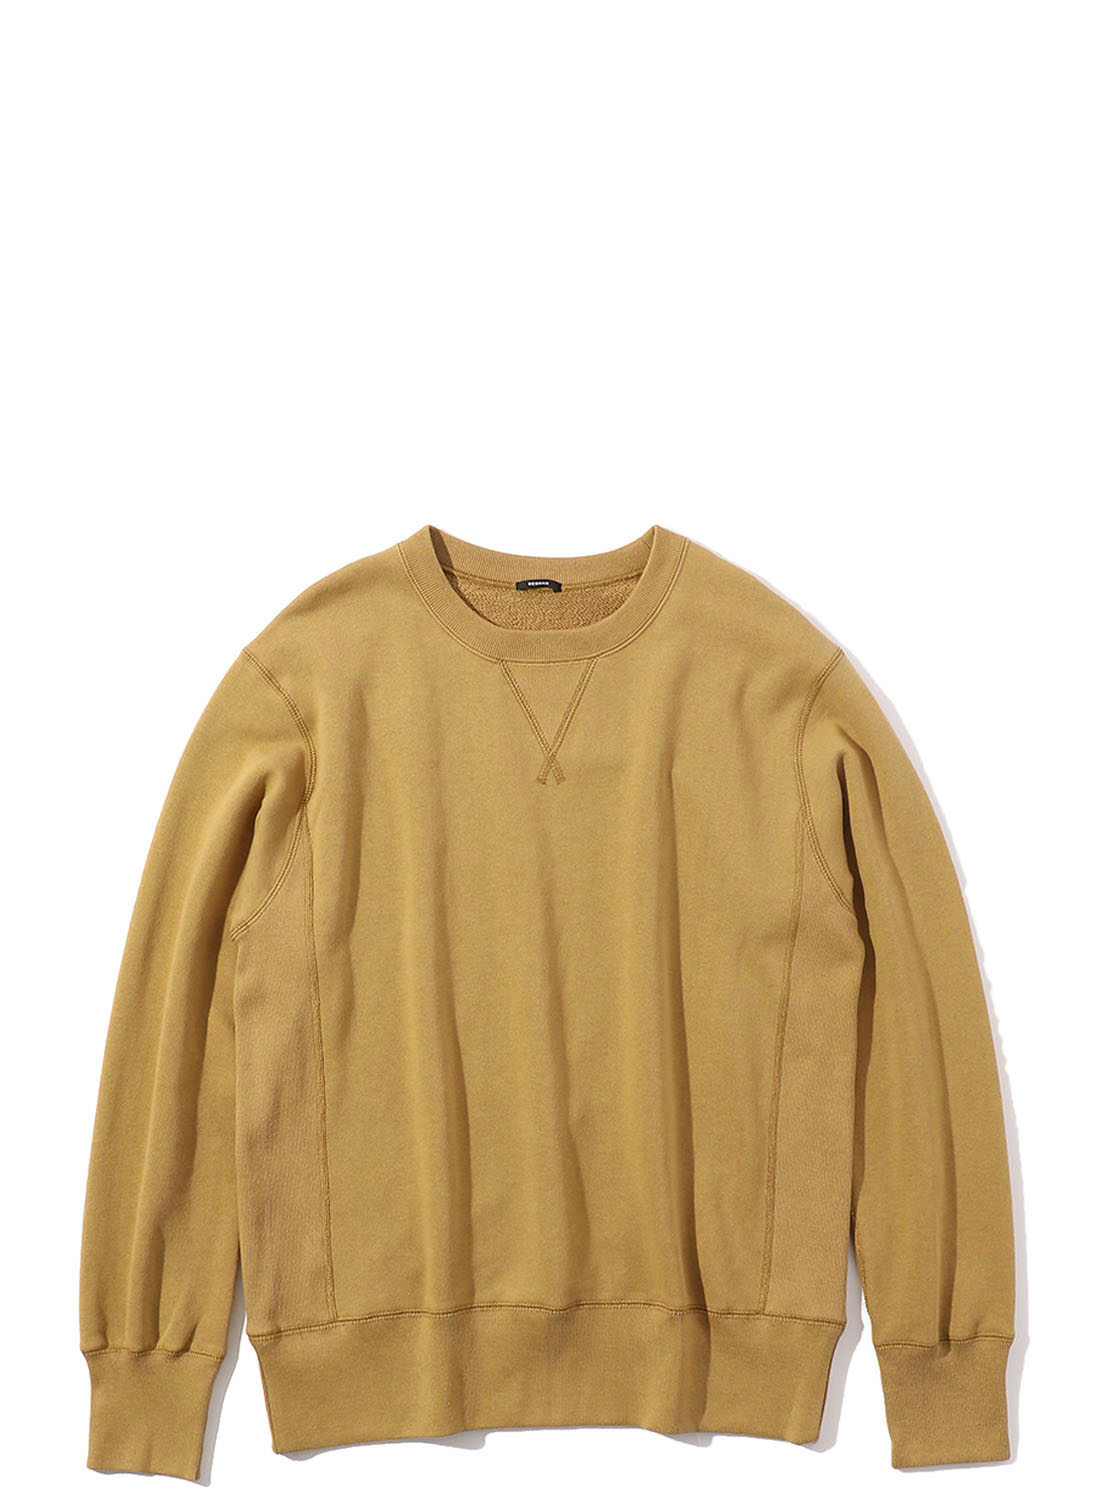 【日本限定】 LOOP SWEAT-MENS